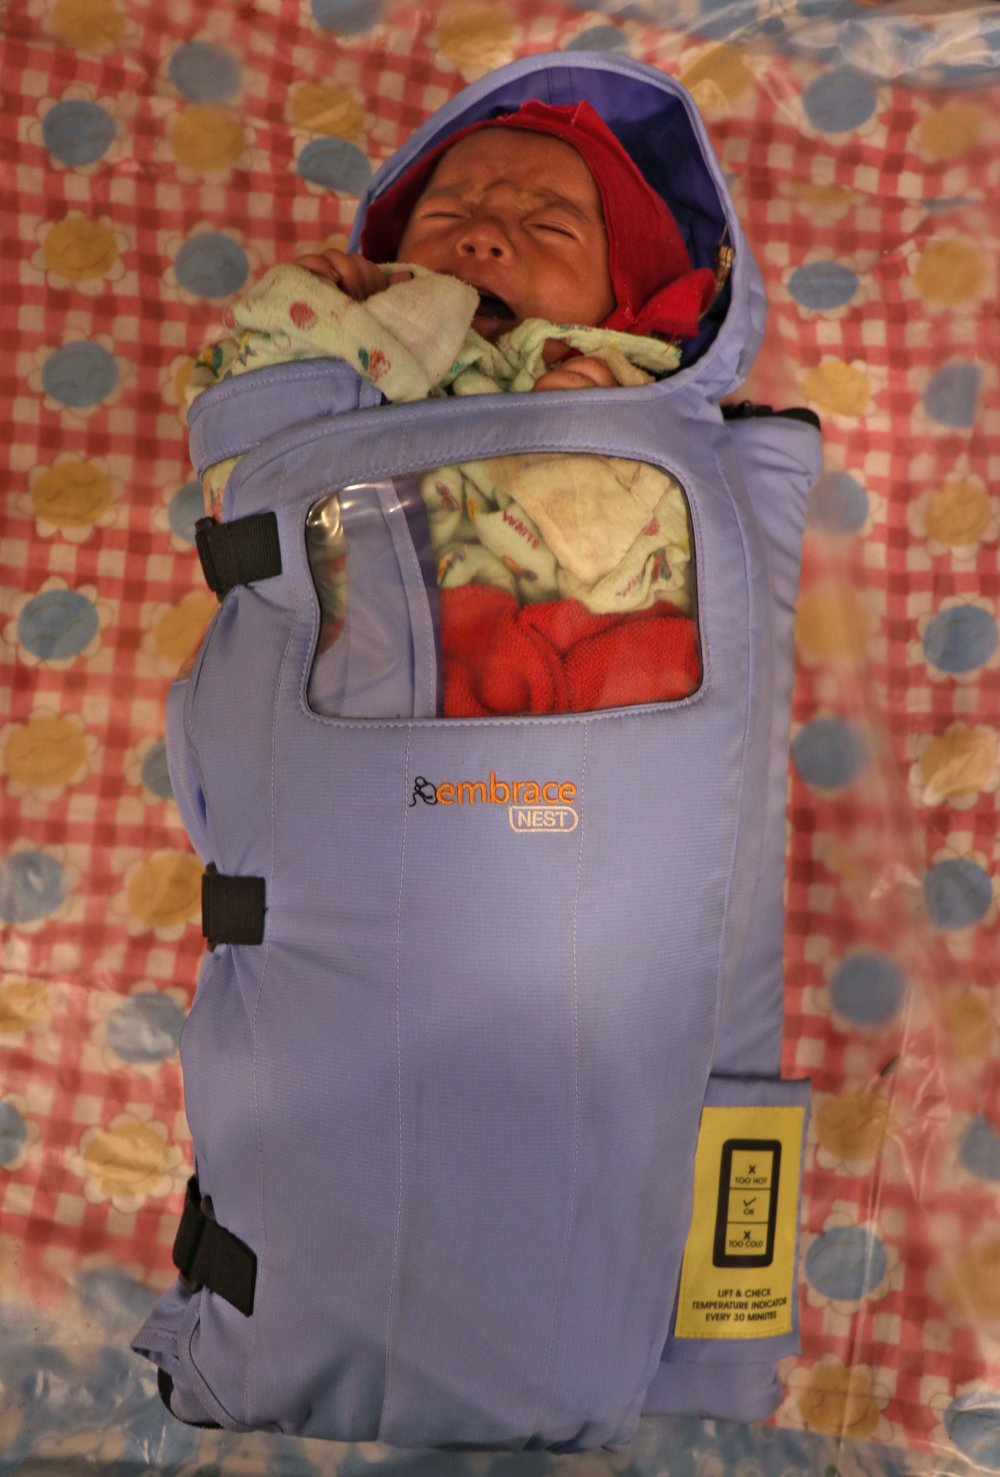 This innovative infant warmer is easy and inexpensive to transport